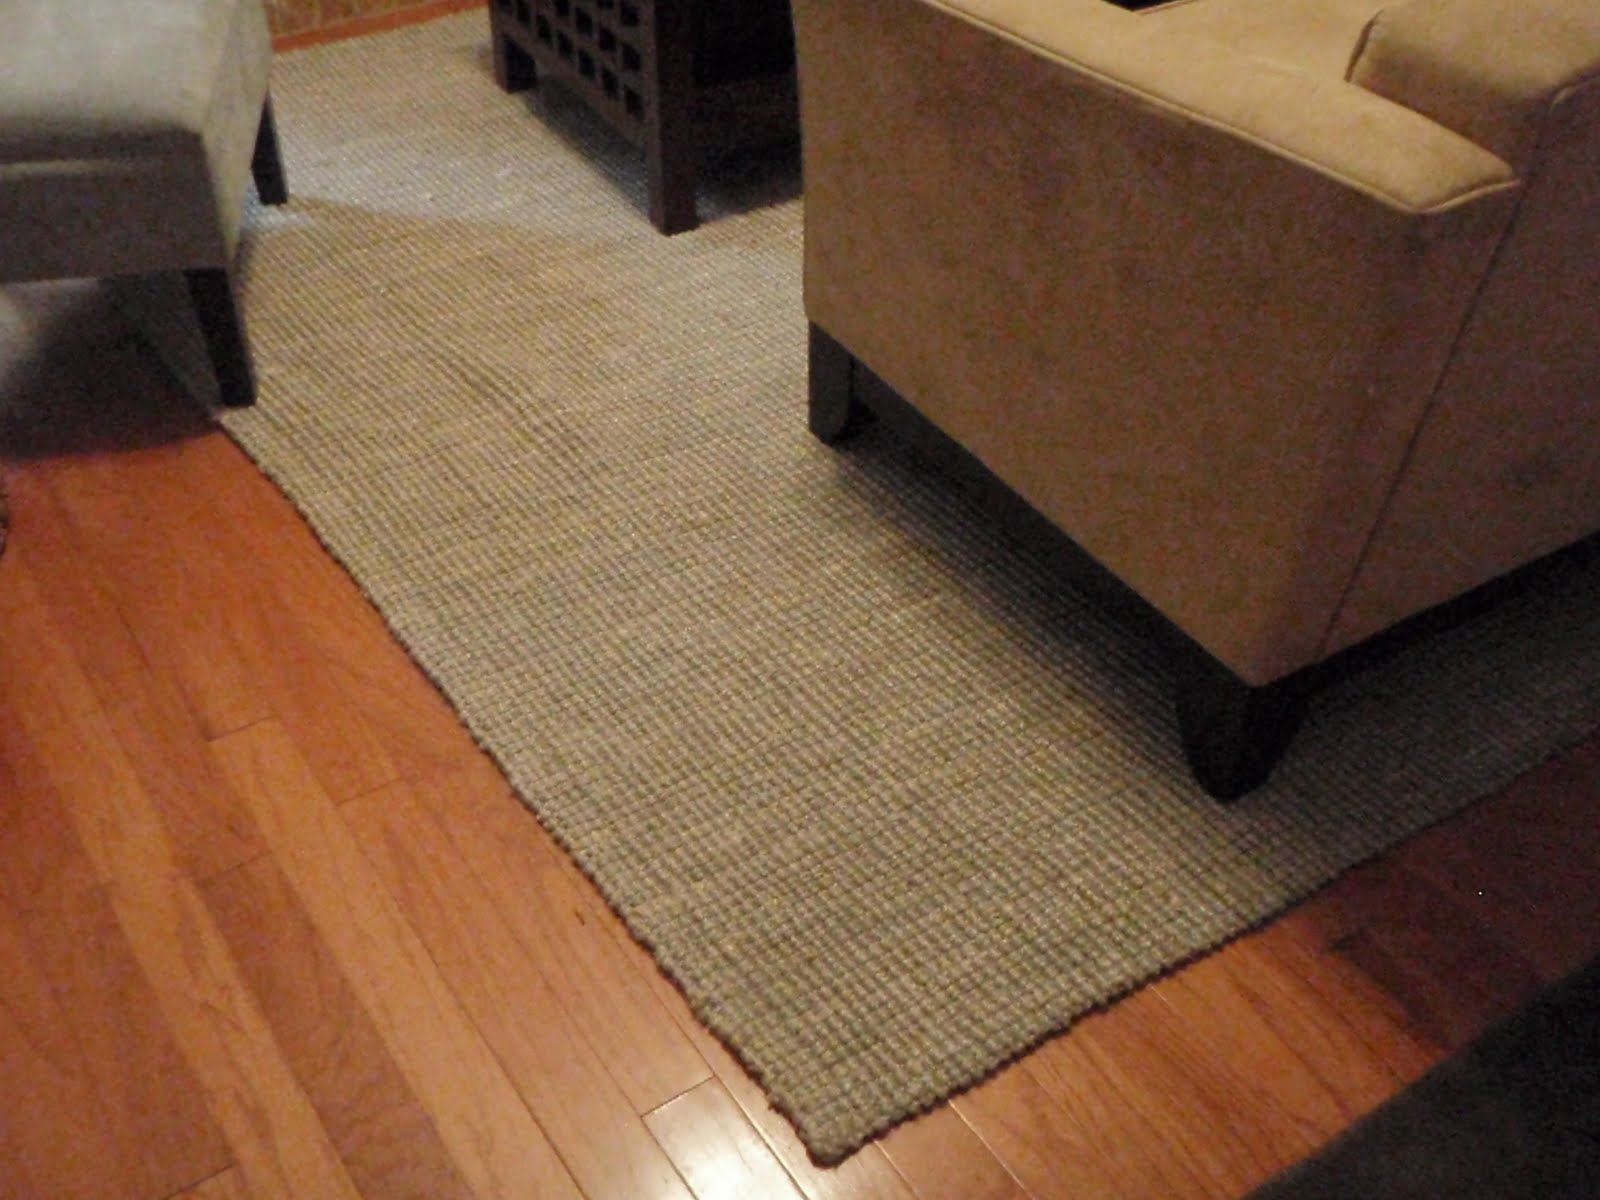 ... A Year Old 8x10 West Elm Jute Bouclé Rug For $50 (retail: $199), I Had  To Check It Out! It Was In Perfect Condition And Destined To Come Home With  Me.